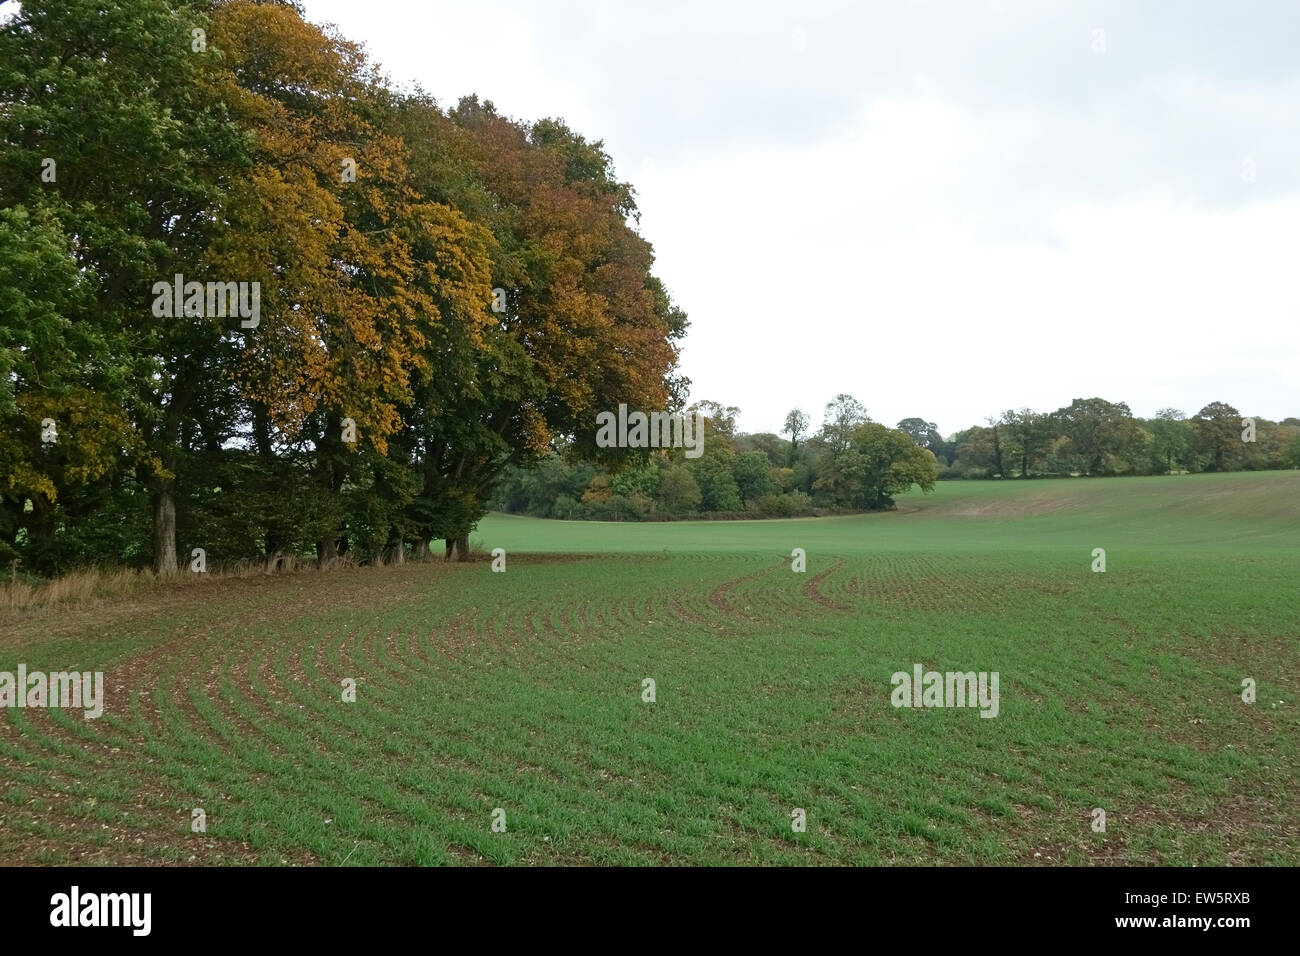 Young winter wheat crop in autumn with trees turning to autumn colour, Berkshire October - Stock Image